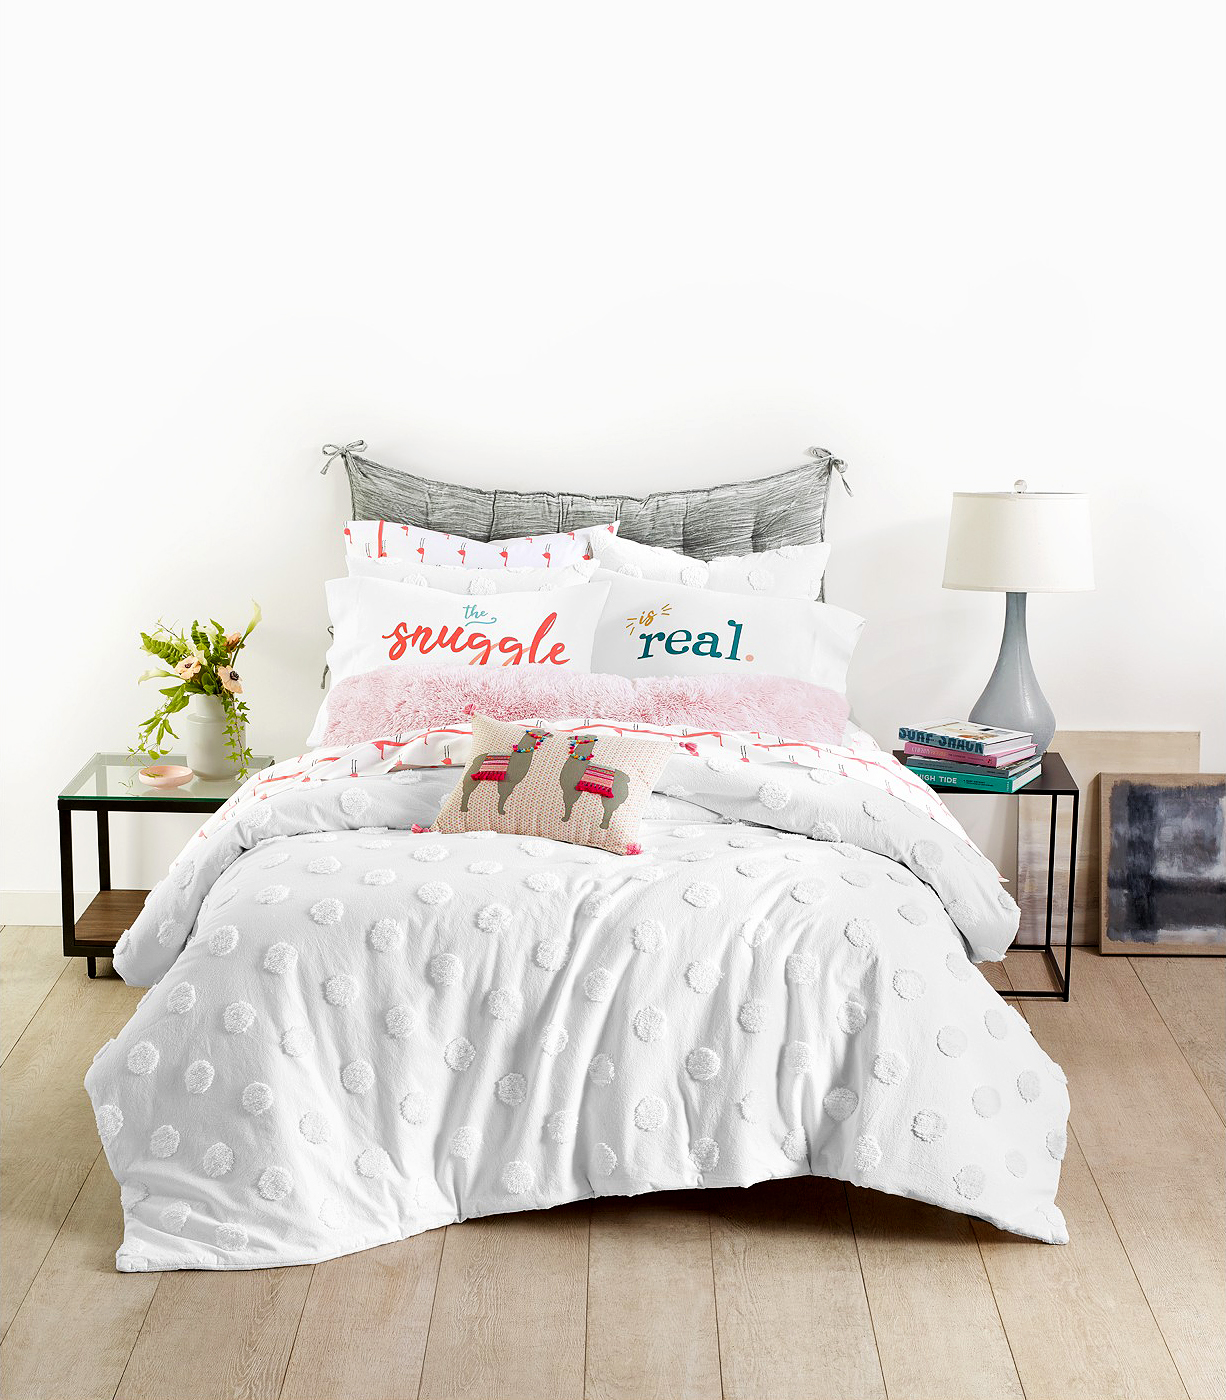 Macy's dorm-room friendly bedding